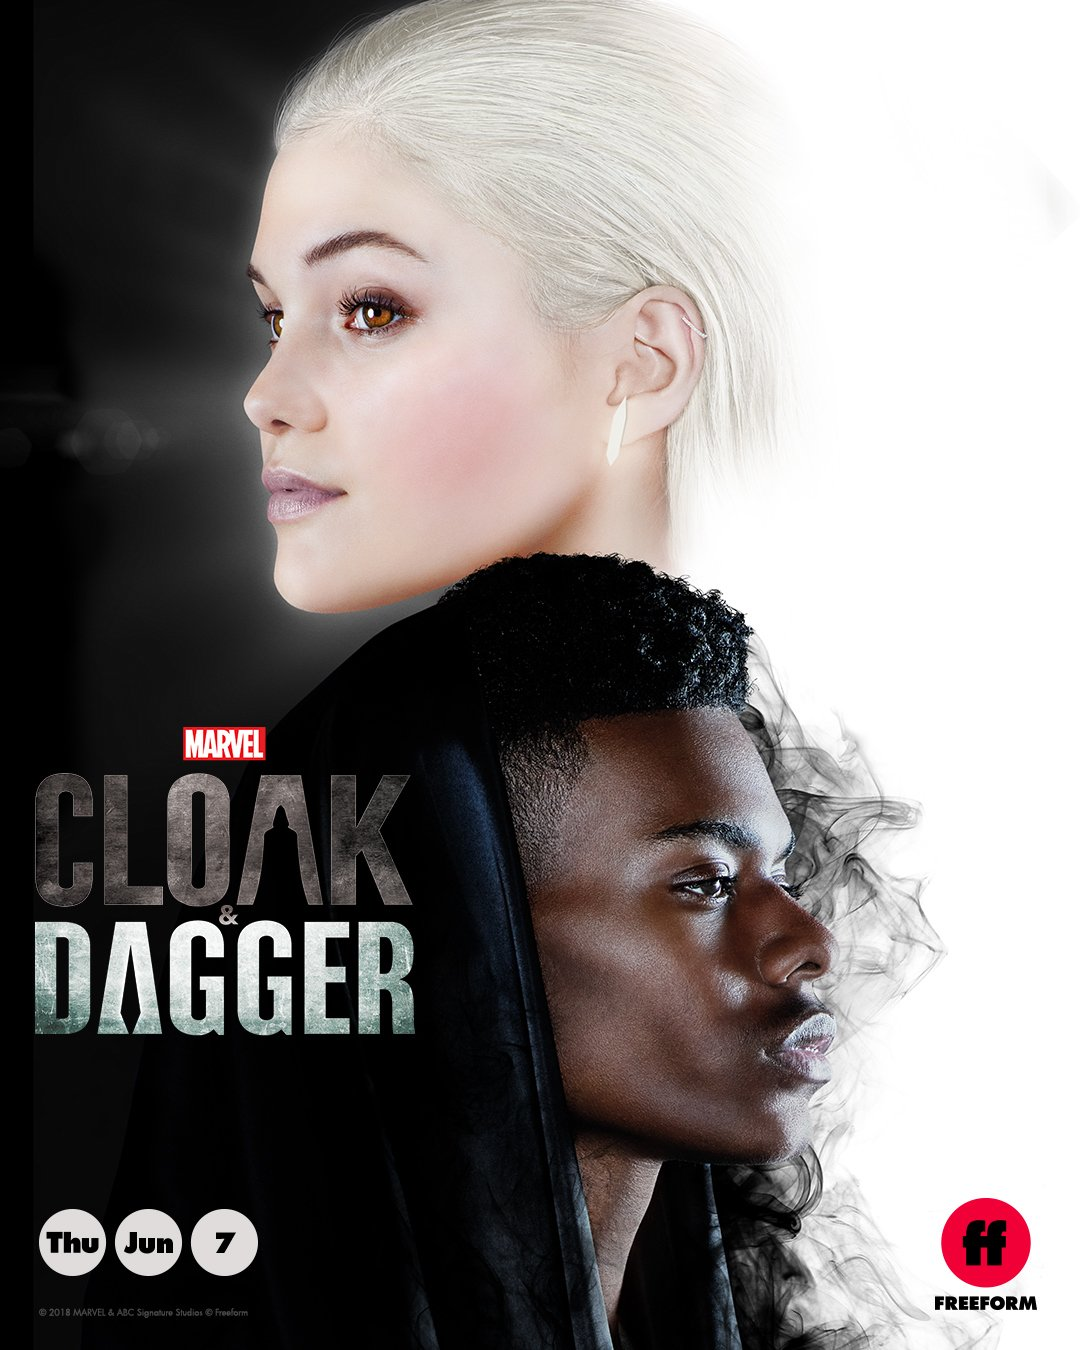 It always came down to two people, the divine pairing. #CloakAndDagger https://t.co/4At2jarYw2